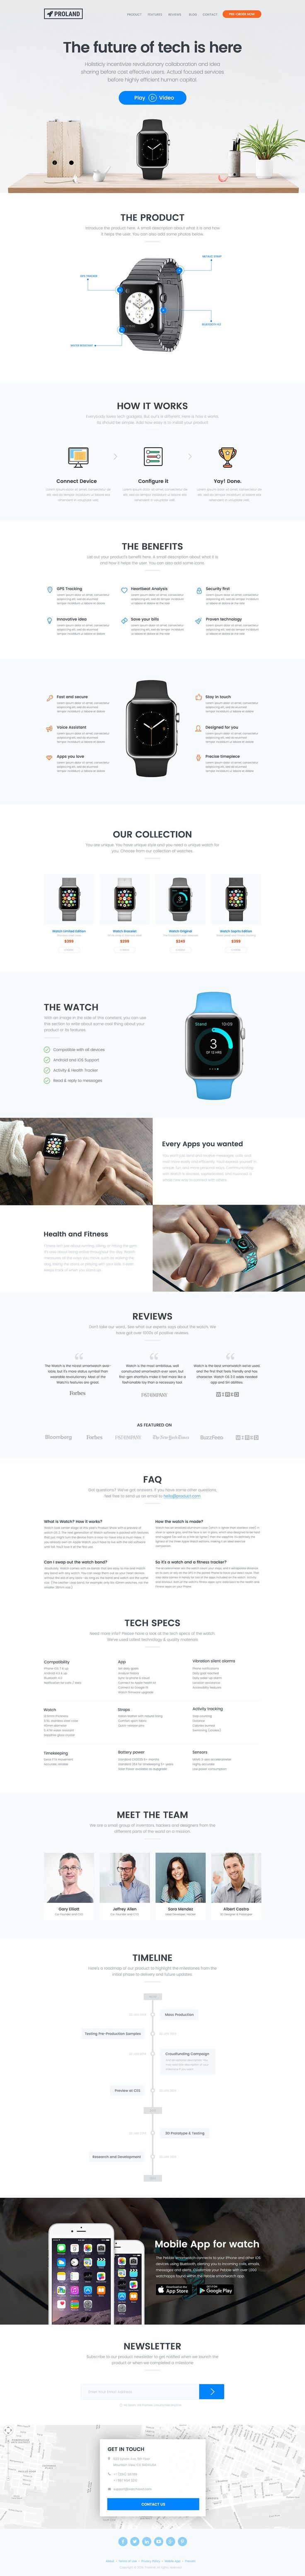 'Proland' is a One Page HTML template perfect for your next product campaign. The well designed and thought-out Single Page template is integrated with PayPal and Mailchimp to collect pre-sale income as well as gather email address for the final campaign launch. There is also 2 neat header layout options for Kickstarter and IndieGogo campaigns! Other features include a slick product infographic section, product timeline & a product range section with pop-up order forms. #InfographicsProduct